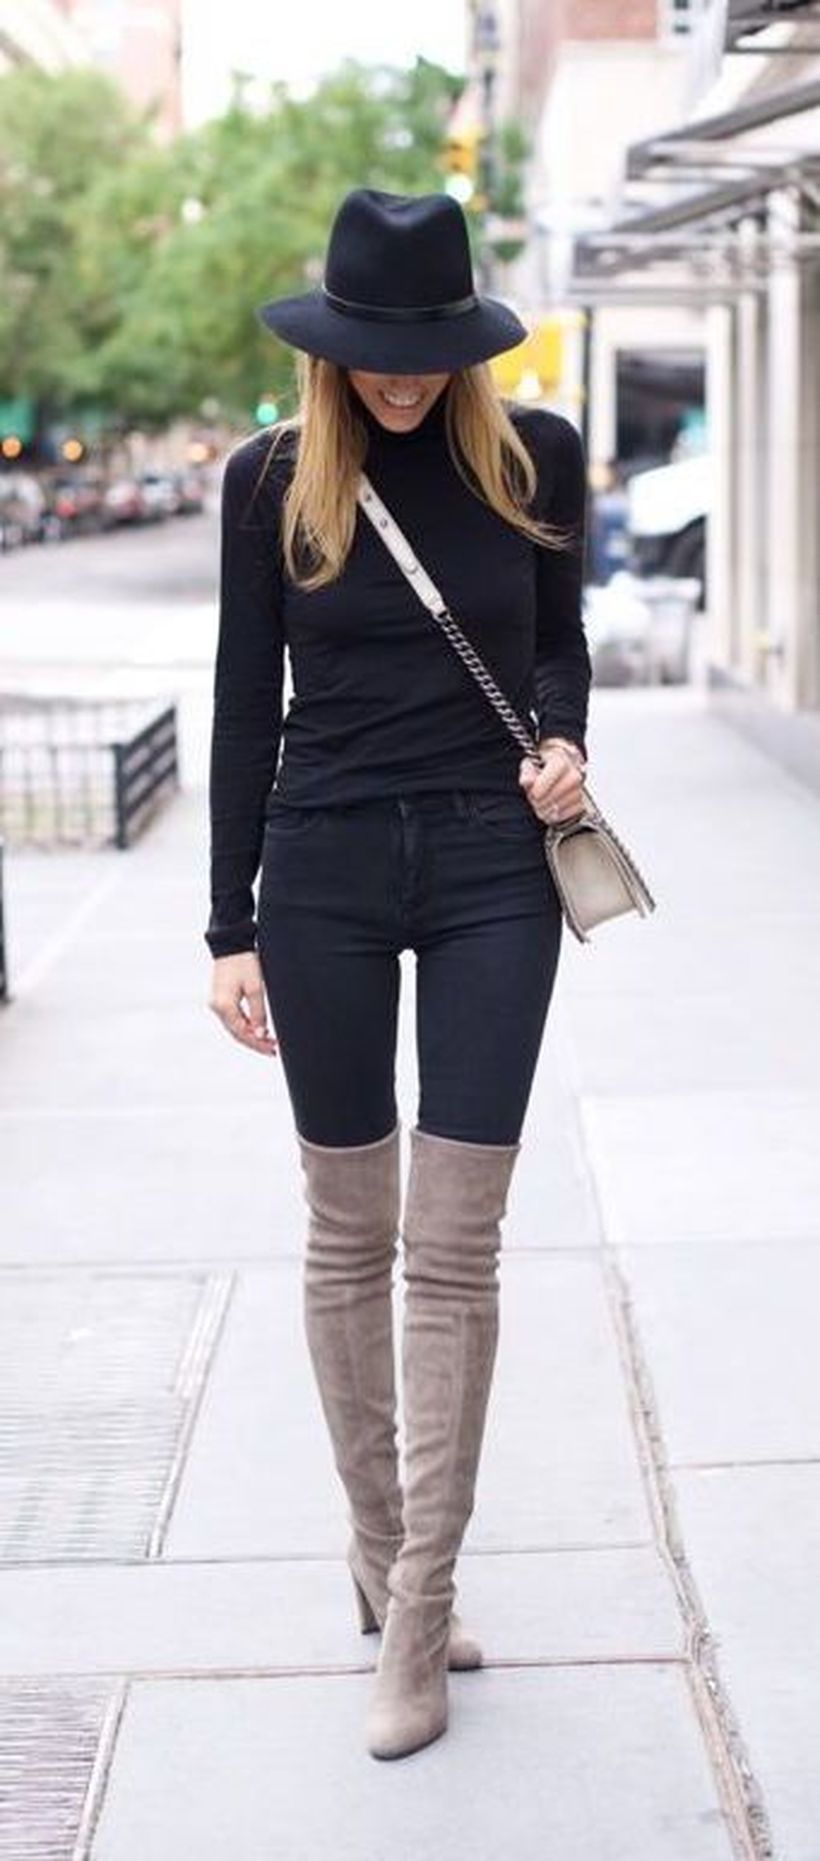 Trendy over the knee boots for winter and fall outfits 73